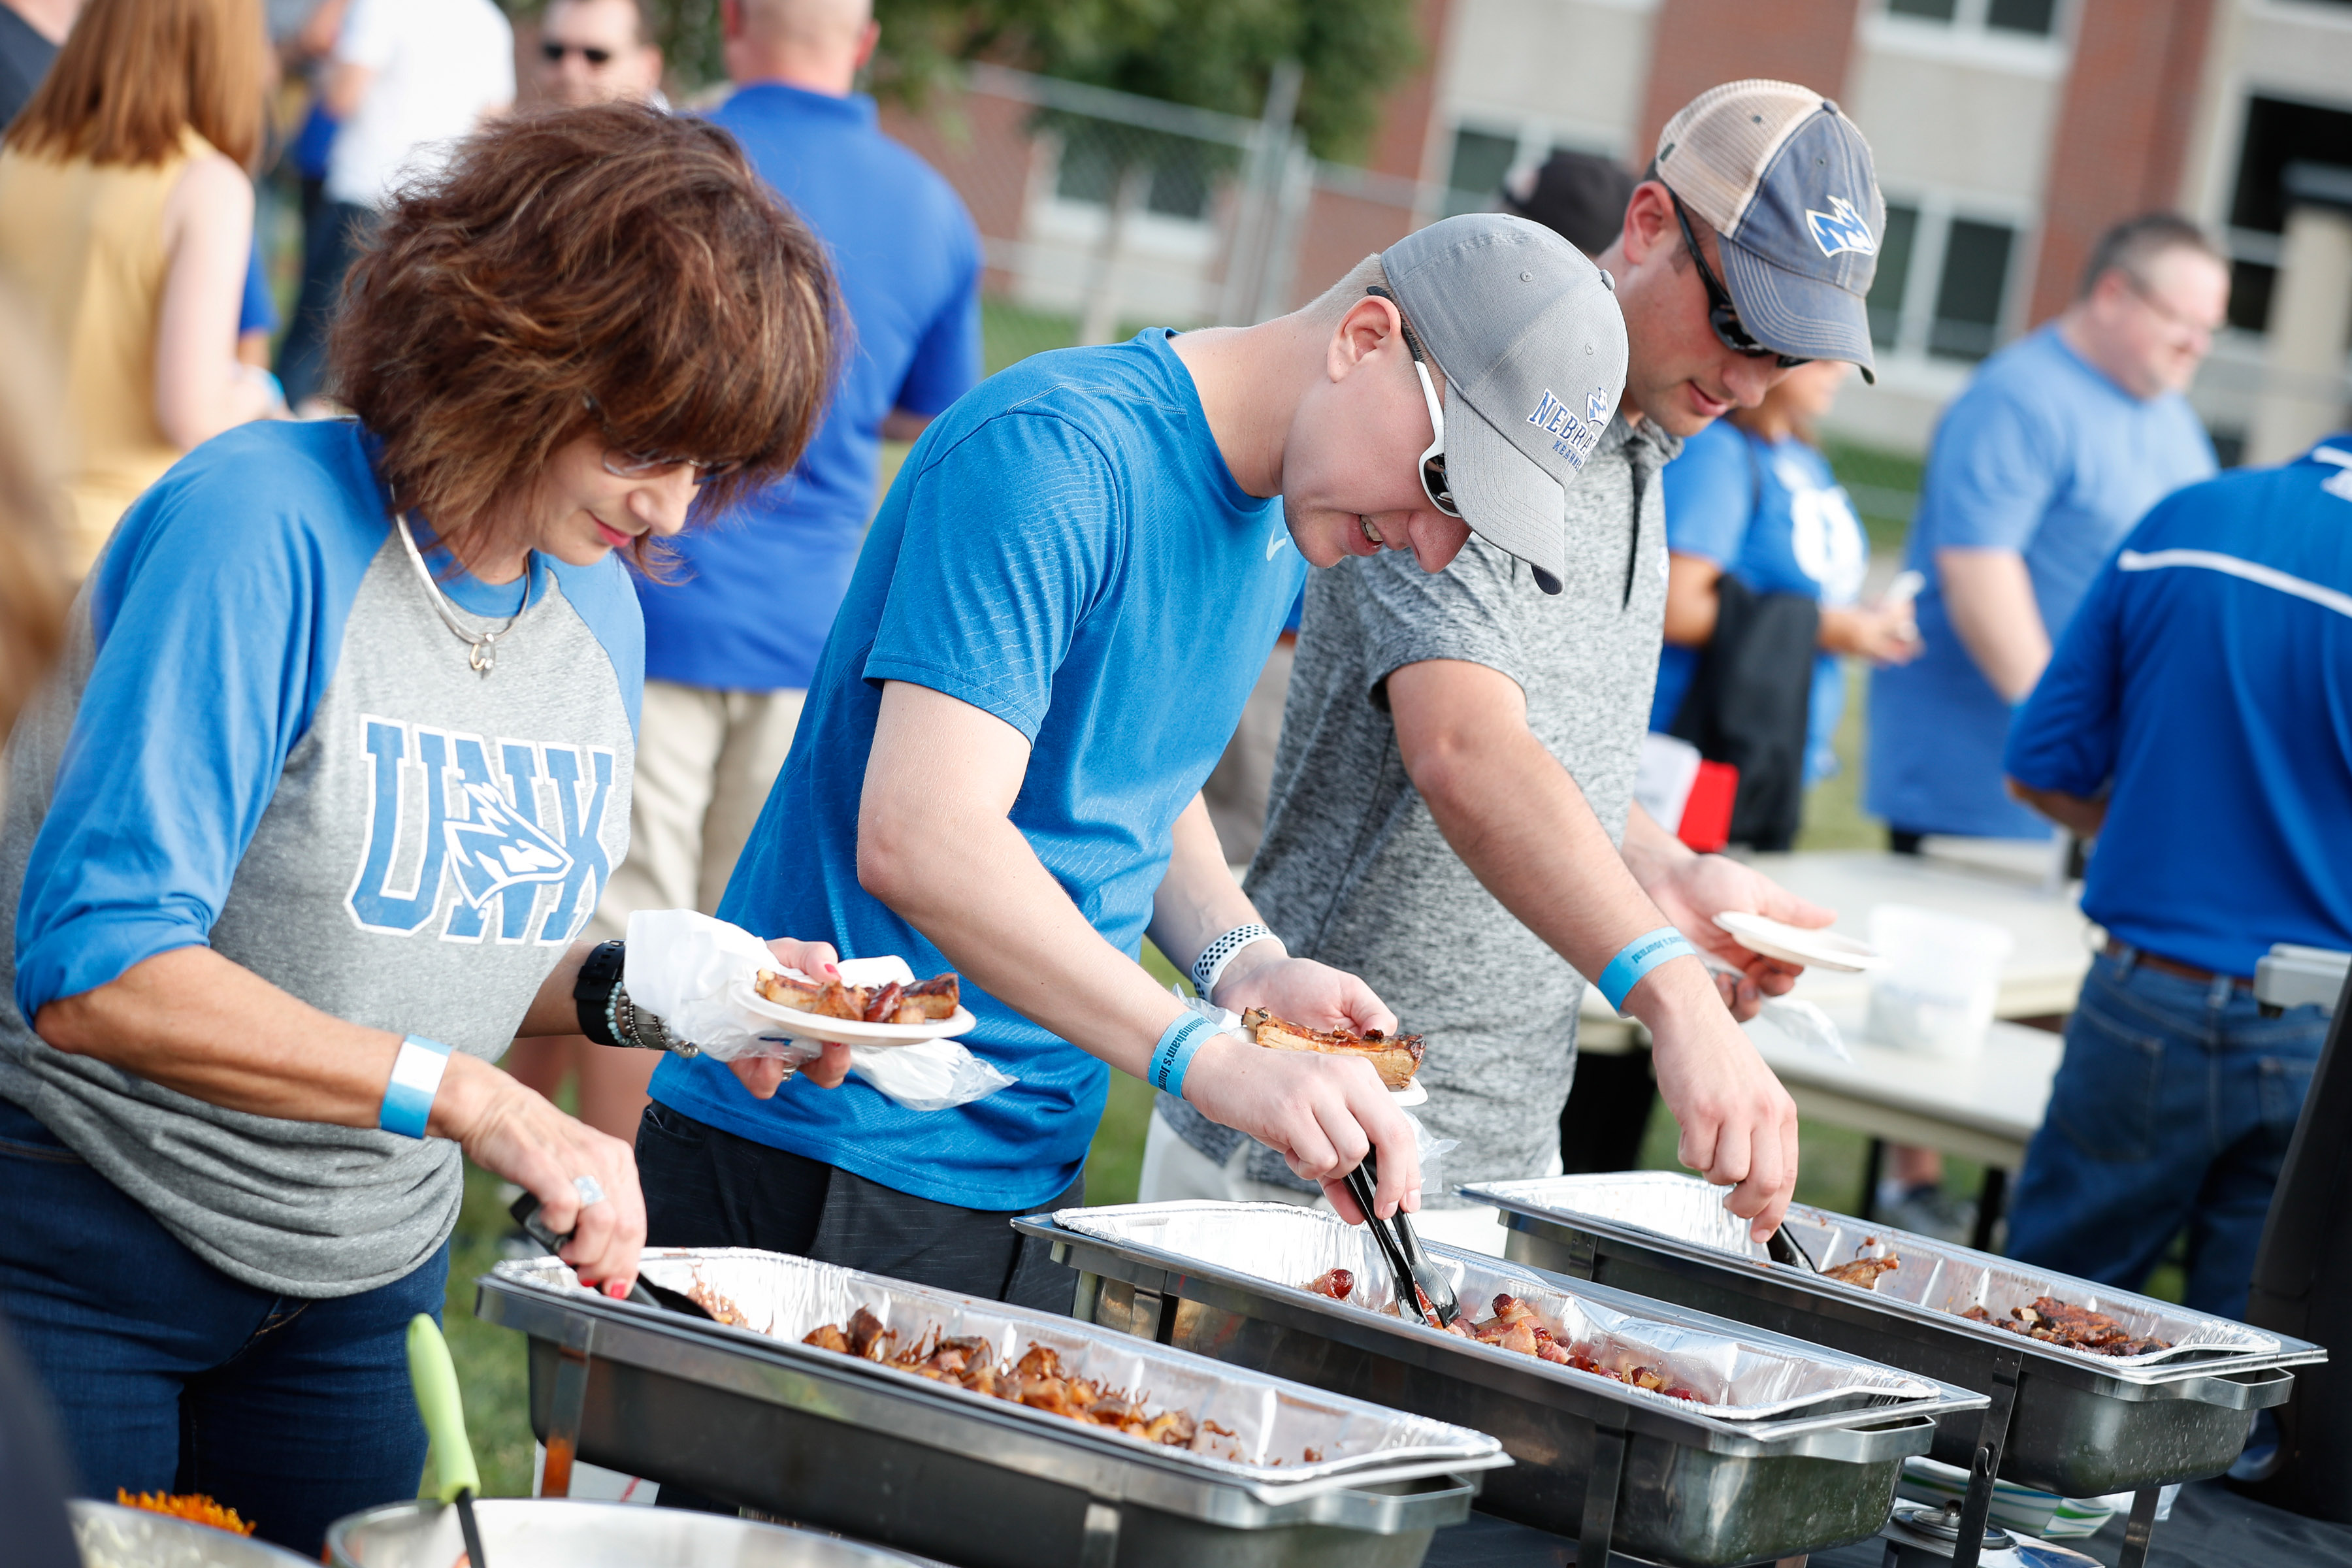 UNK is introducing a new tailgating event to generate more excitement at home football games. Loper Fan Fest features free food, live music, games and beverages, including alcohol for those 21 and older. (Photo by Corbey R. Dorsey, UNK Communications)